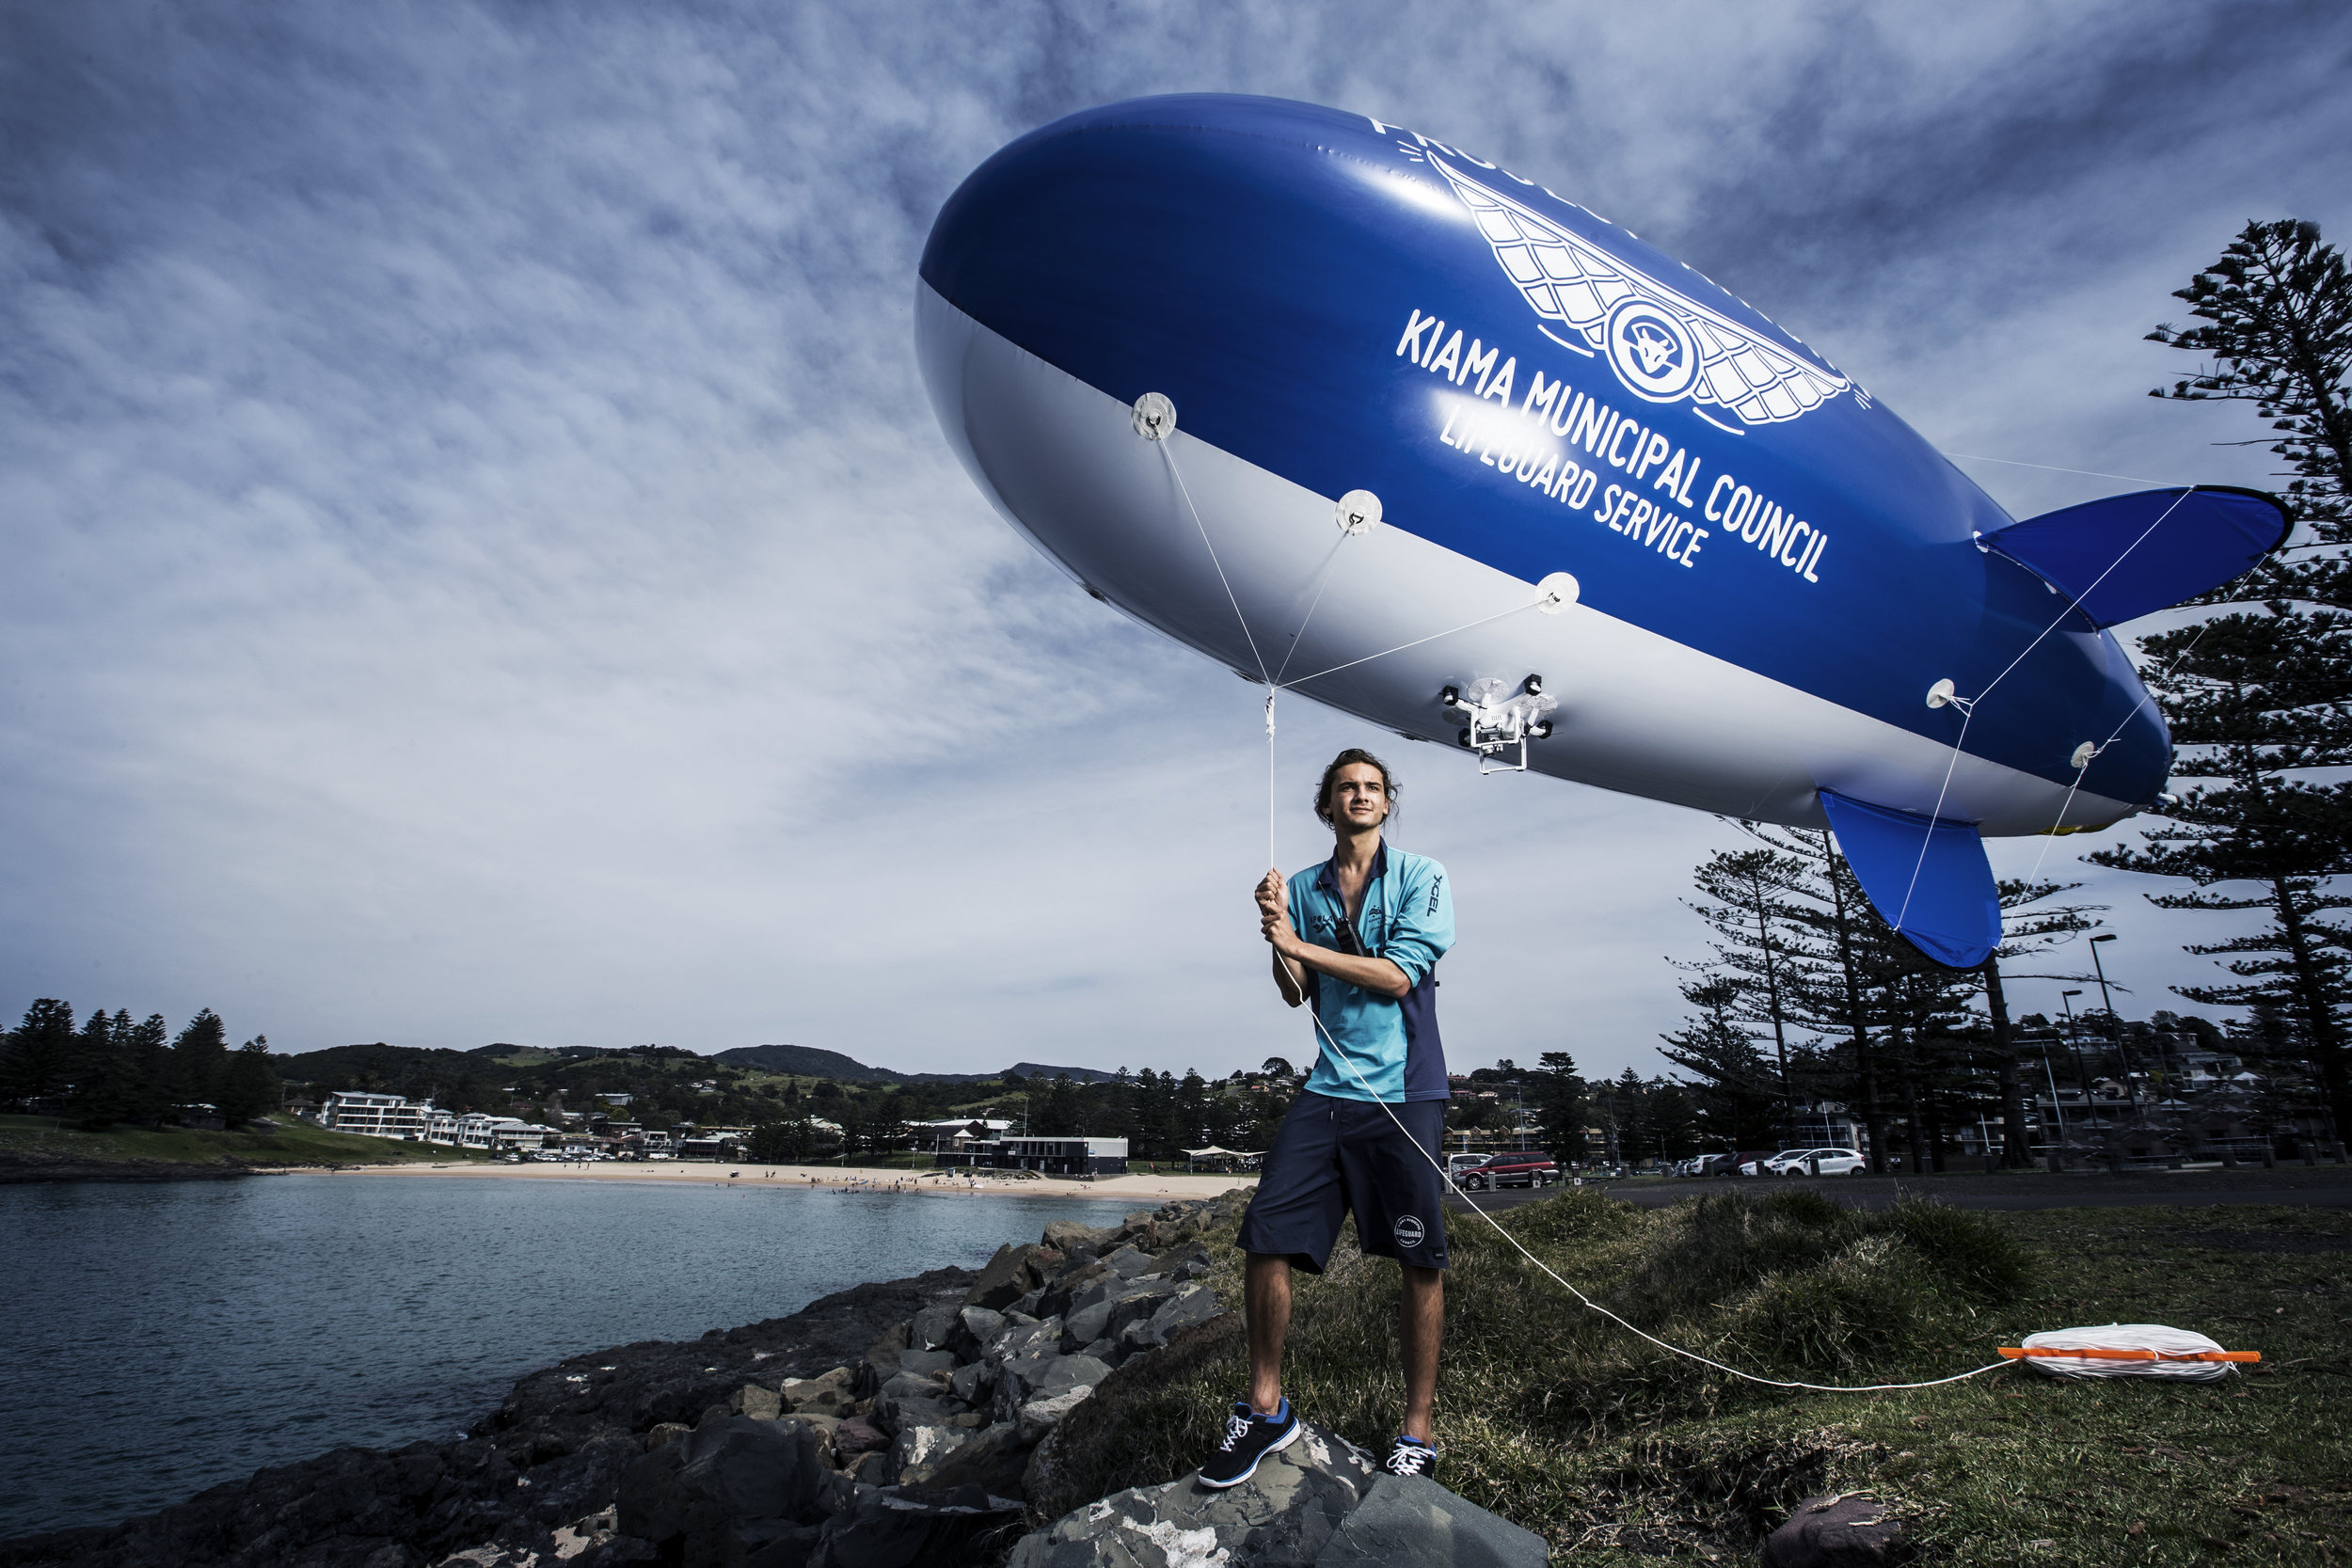 Blimp used to spot sharks, ABC RN The Science Show (Image: UOW)